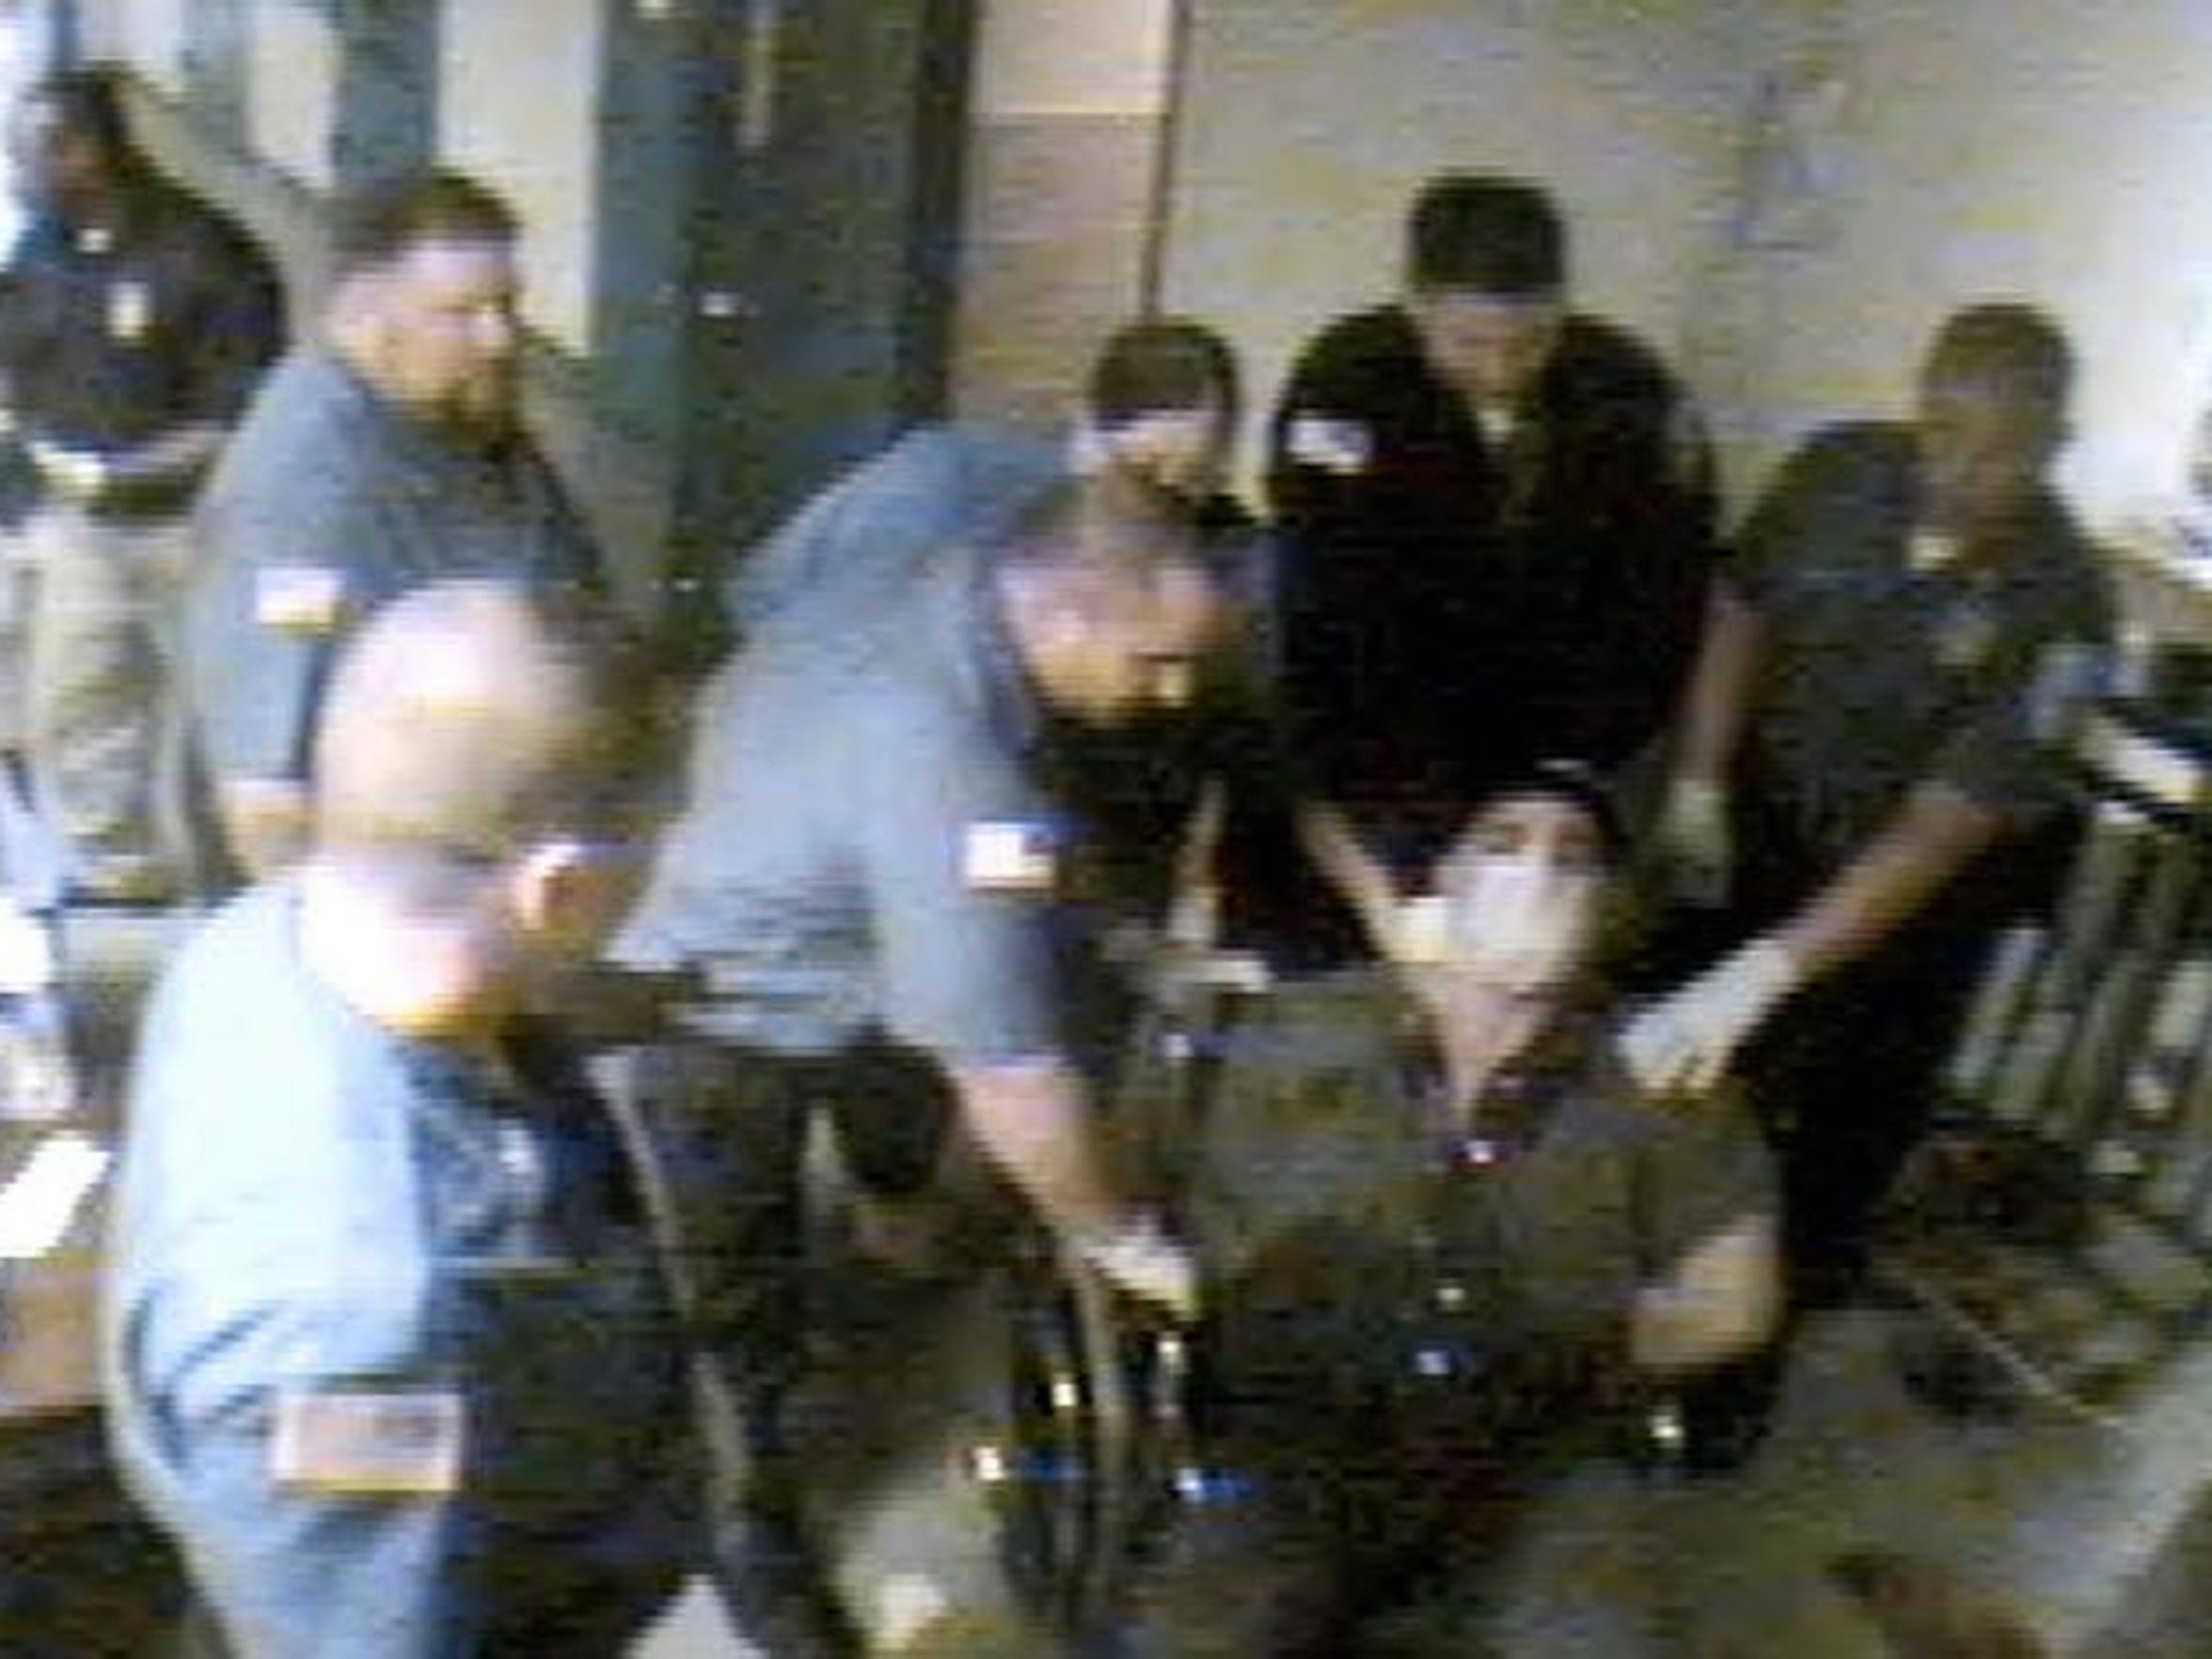 Corrections officers take Bornstein to the jail's medical unit in a wheelchair after a struggle.